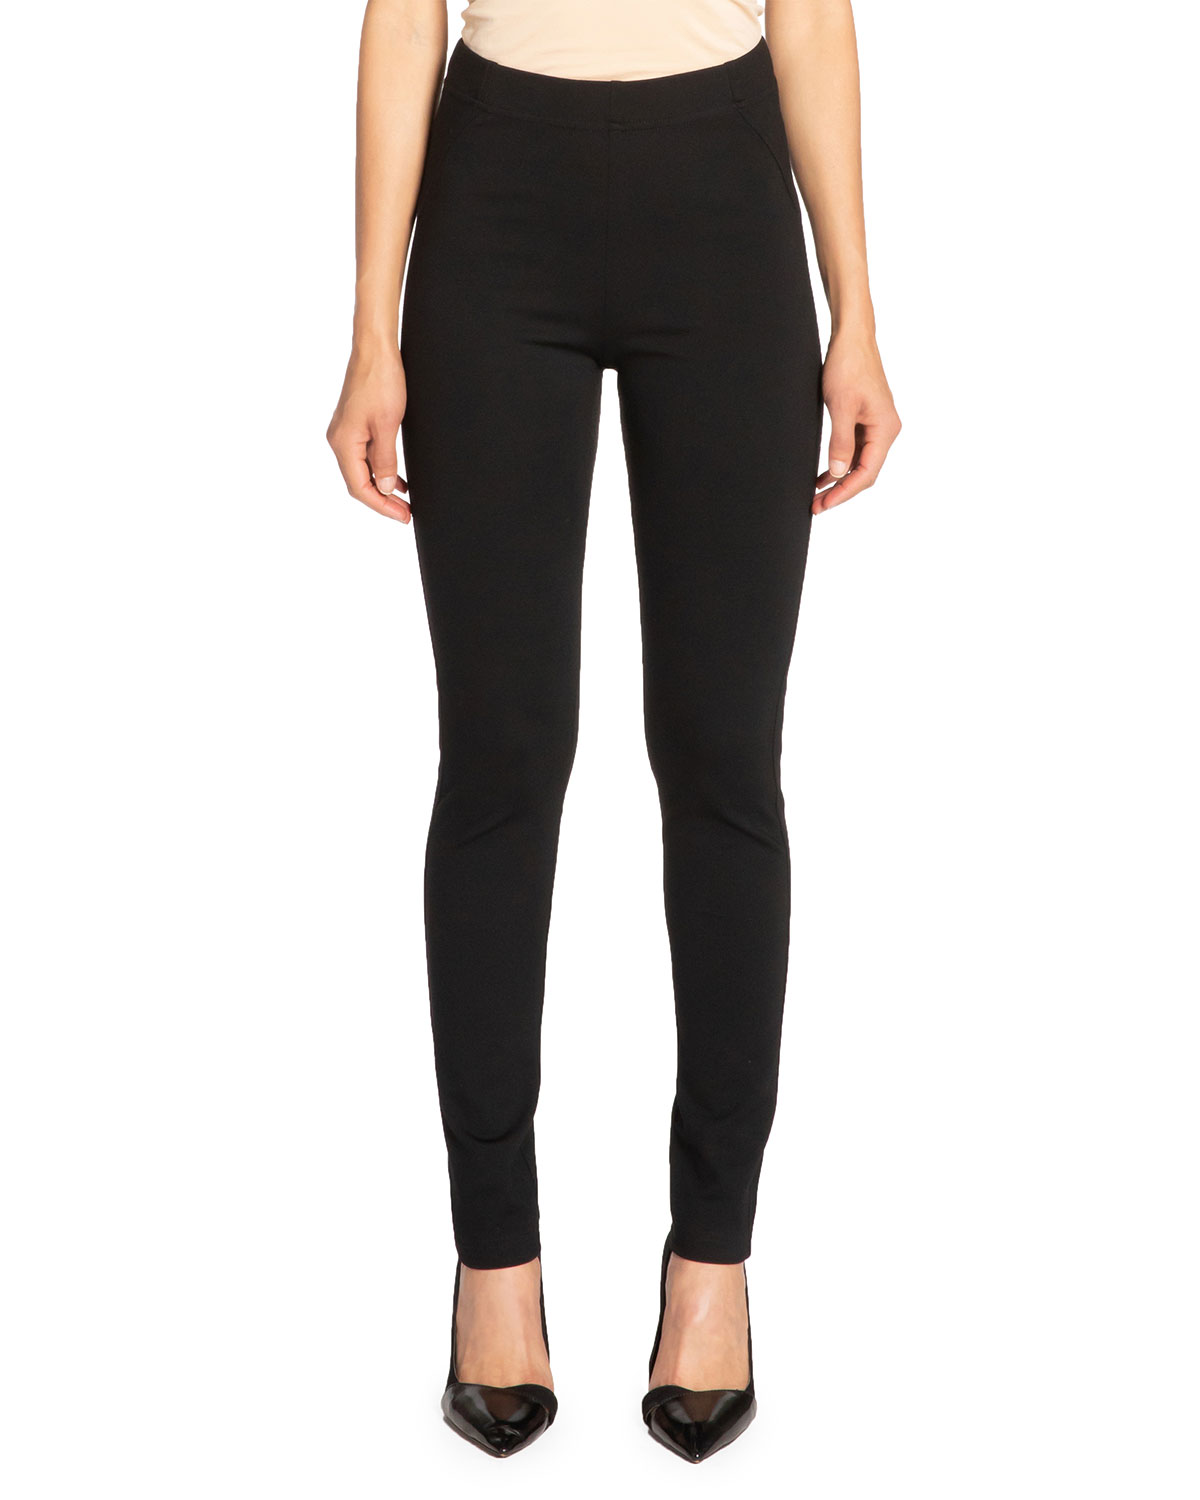 Dawn Double Jersey Legging Pant with Seam Details